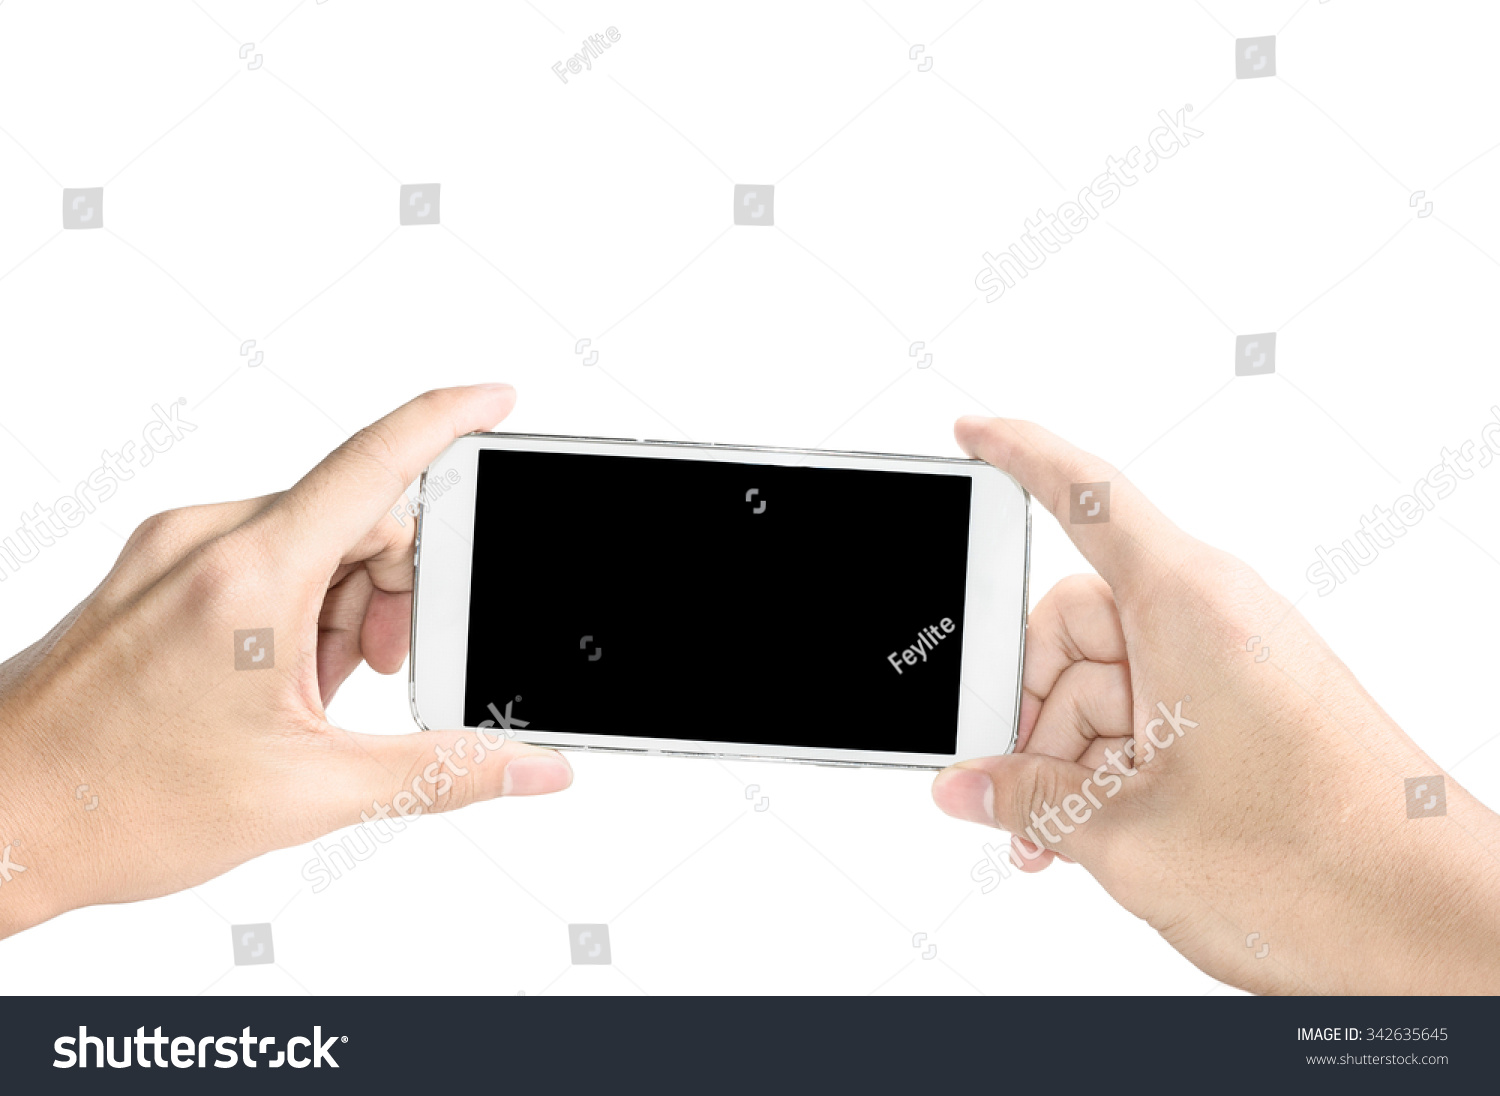 how to search a picture on phone